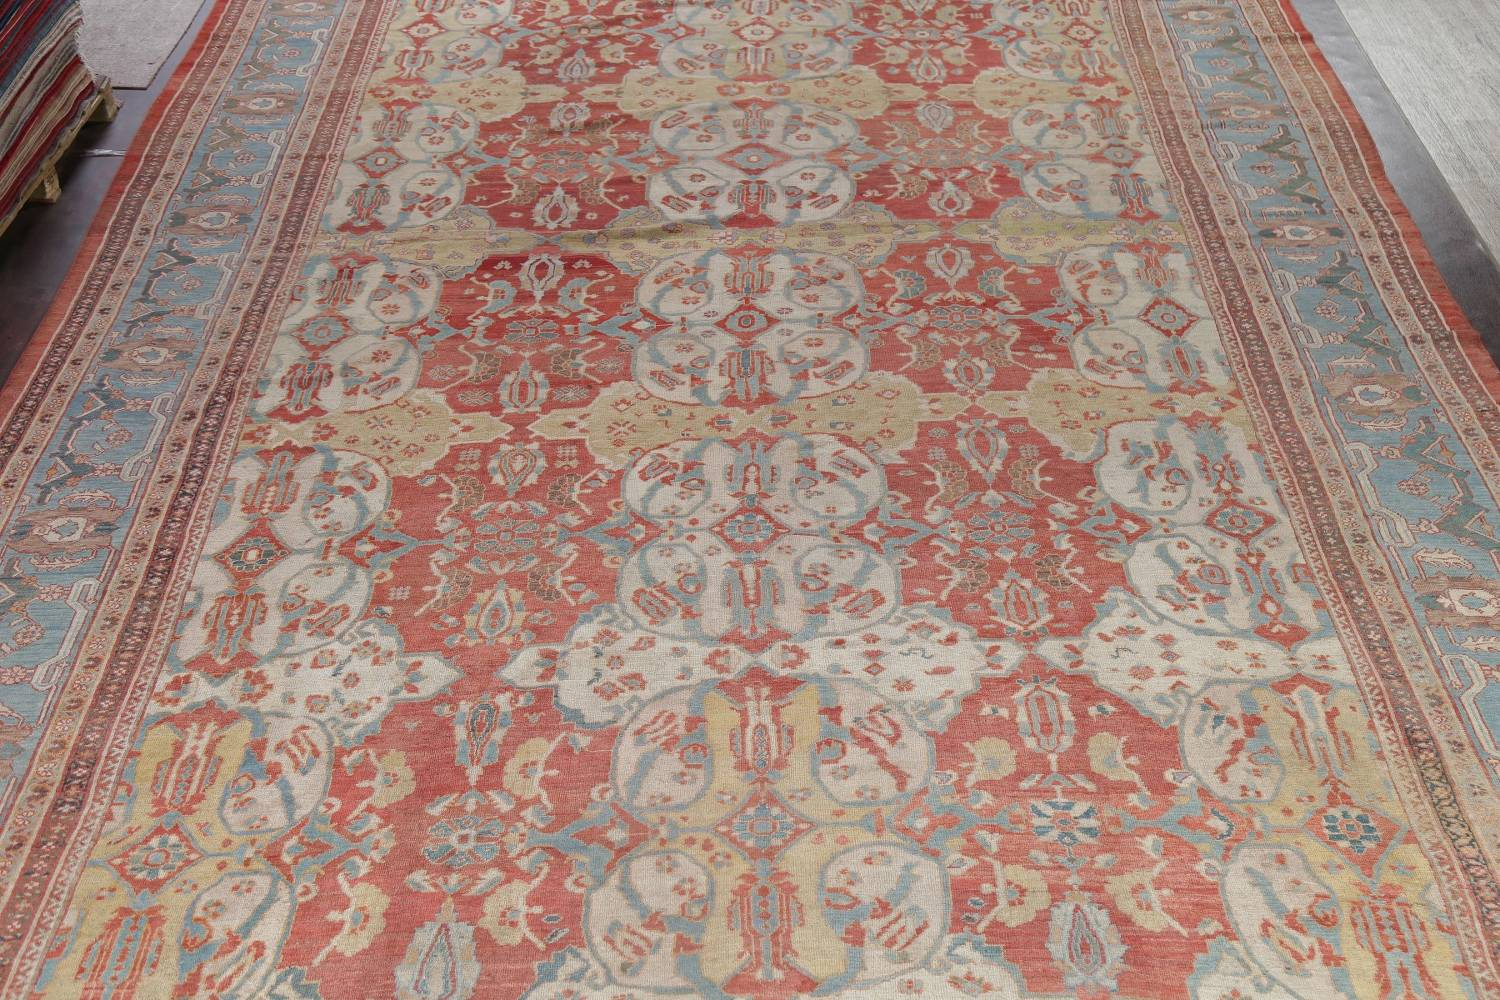 Palace Size Pre-1900 Antique Sultanabad Persian Rug 14x24 image 3